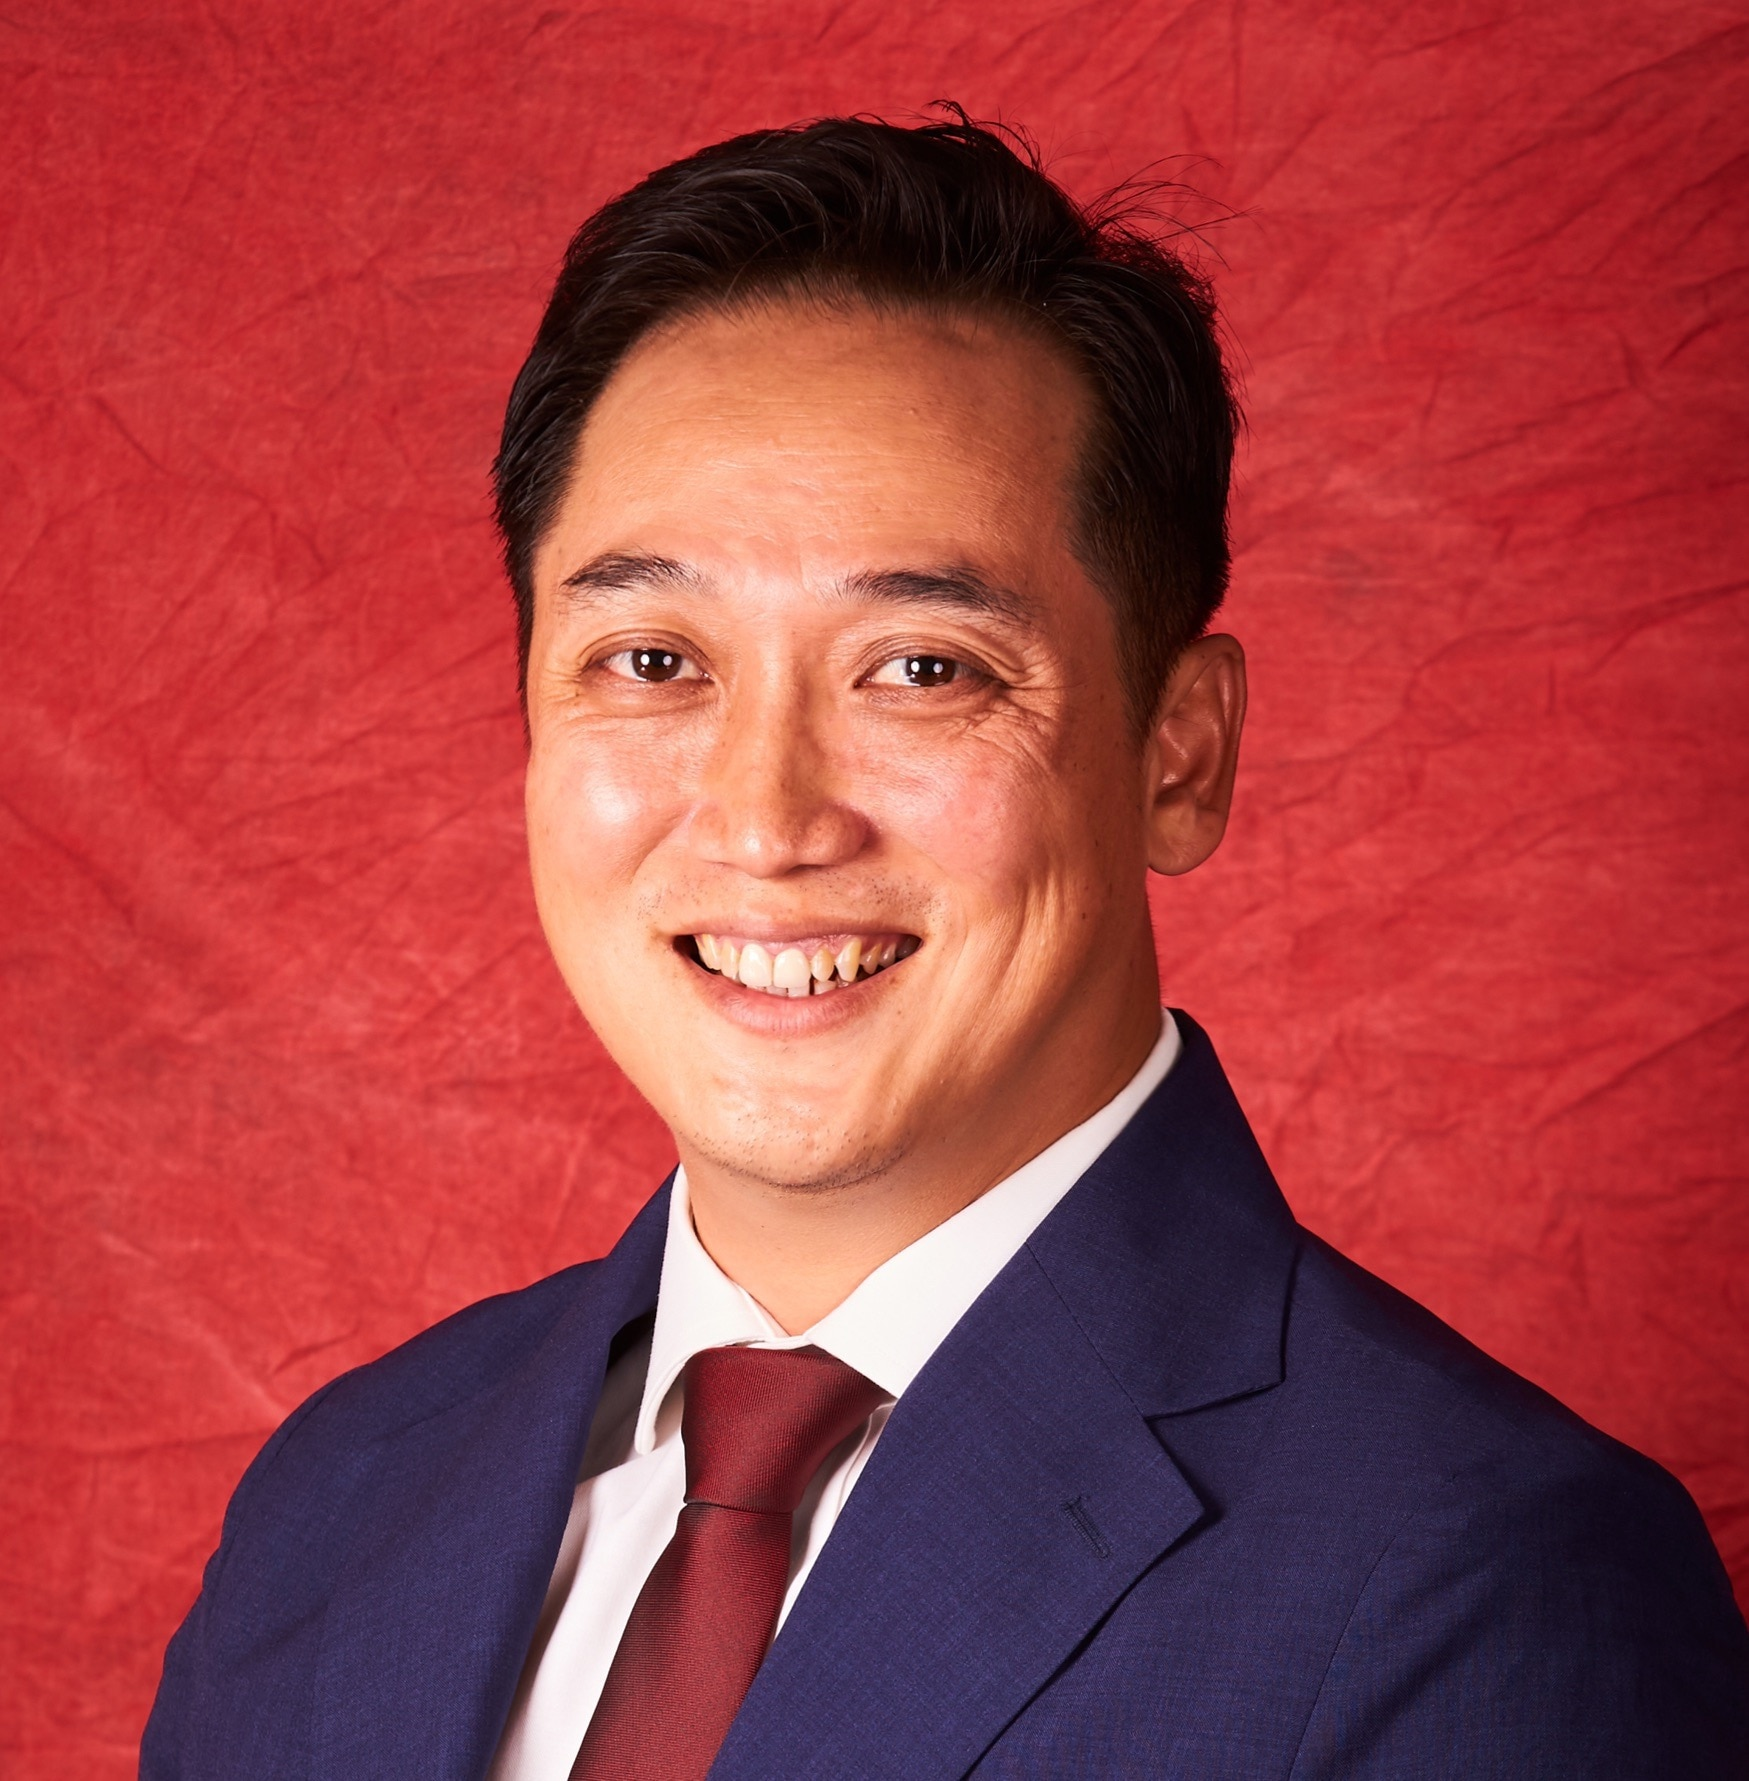 JUNG HOON KIM  Your Financial Professional & Insurance Agent